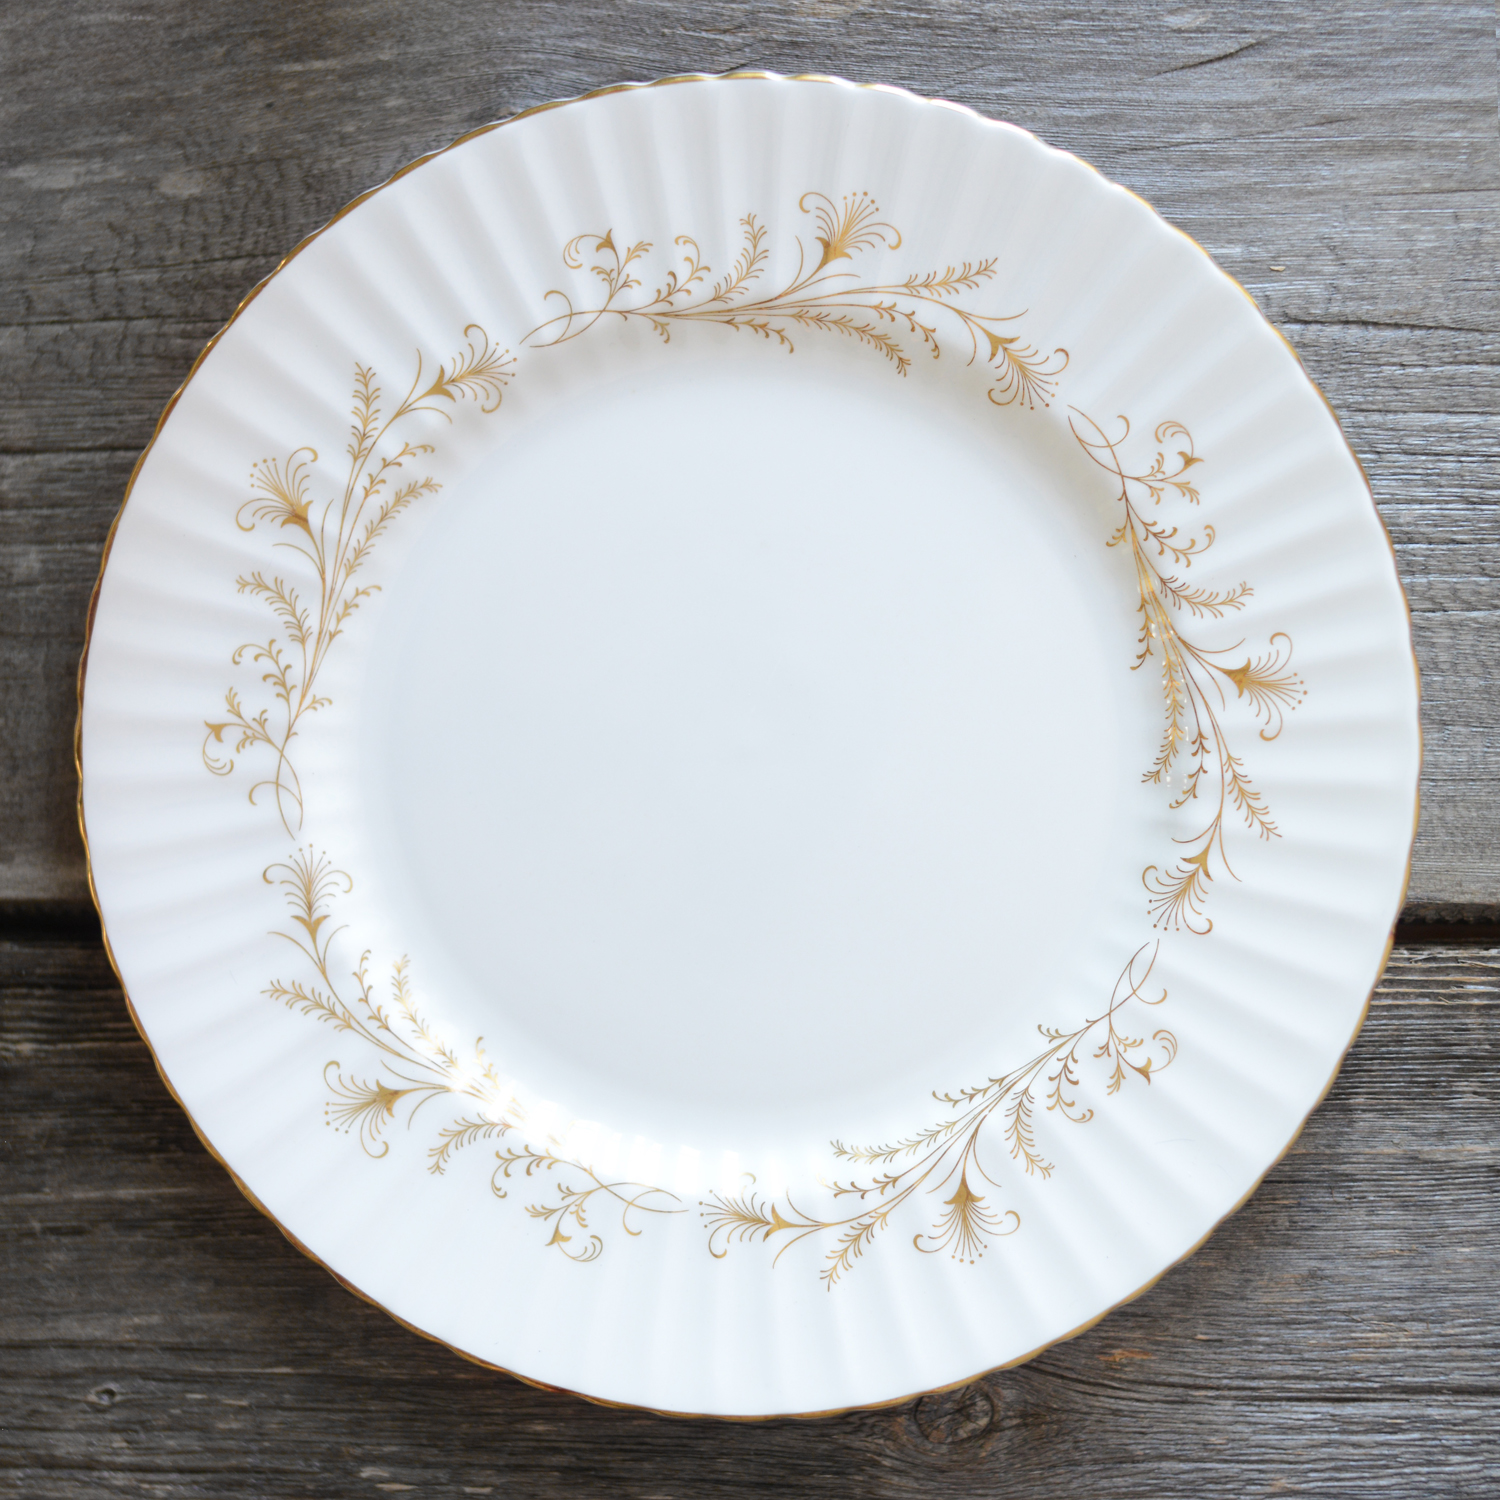 lafayette dinner plate - 2 available